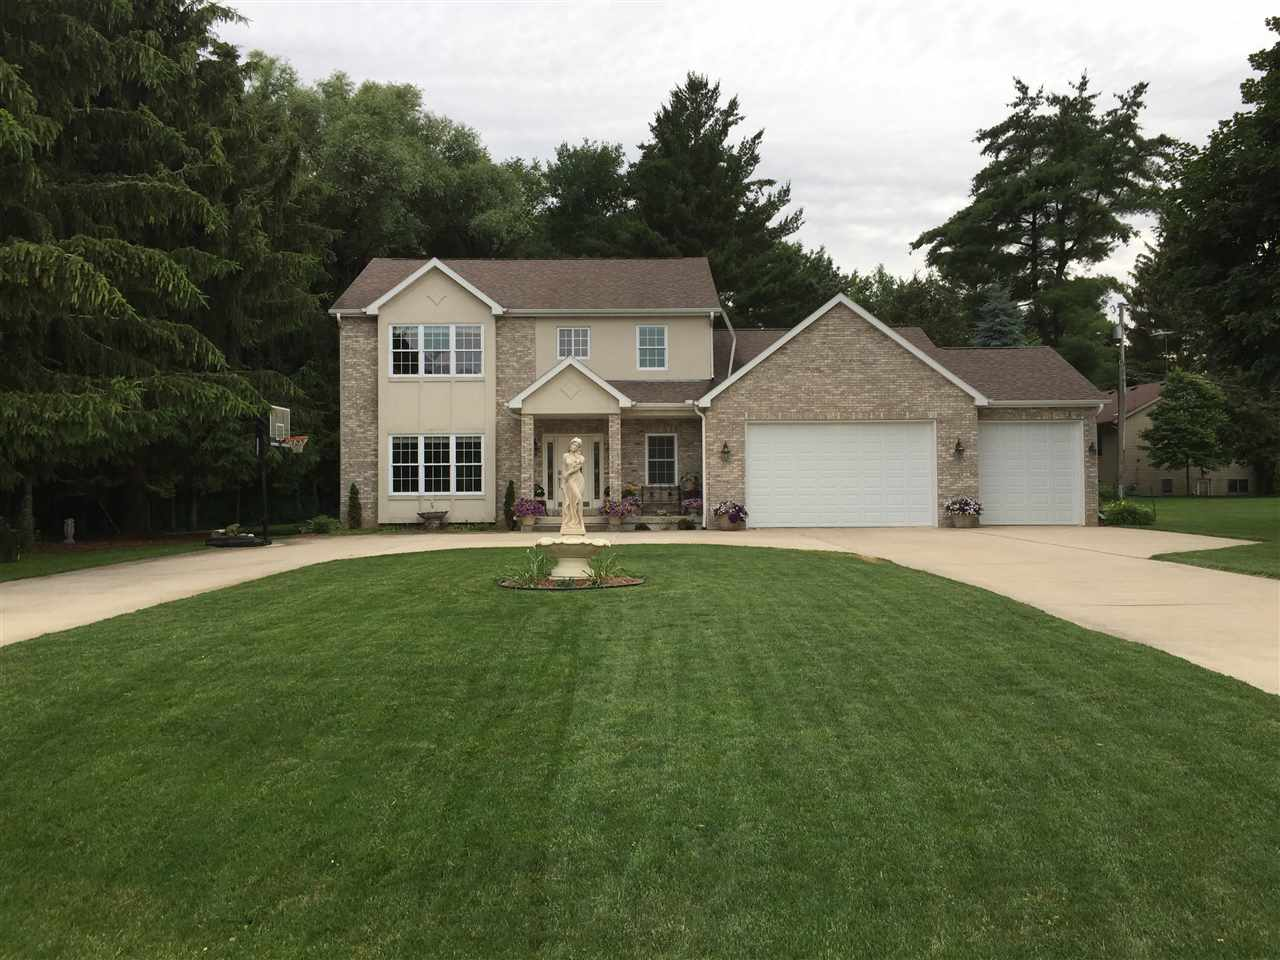 N4451 Wolff Rd, Oakland, WI 53523